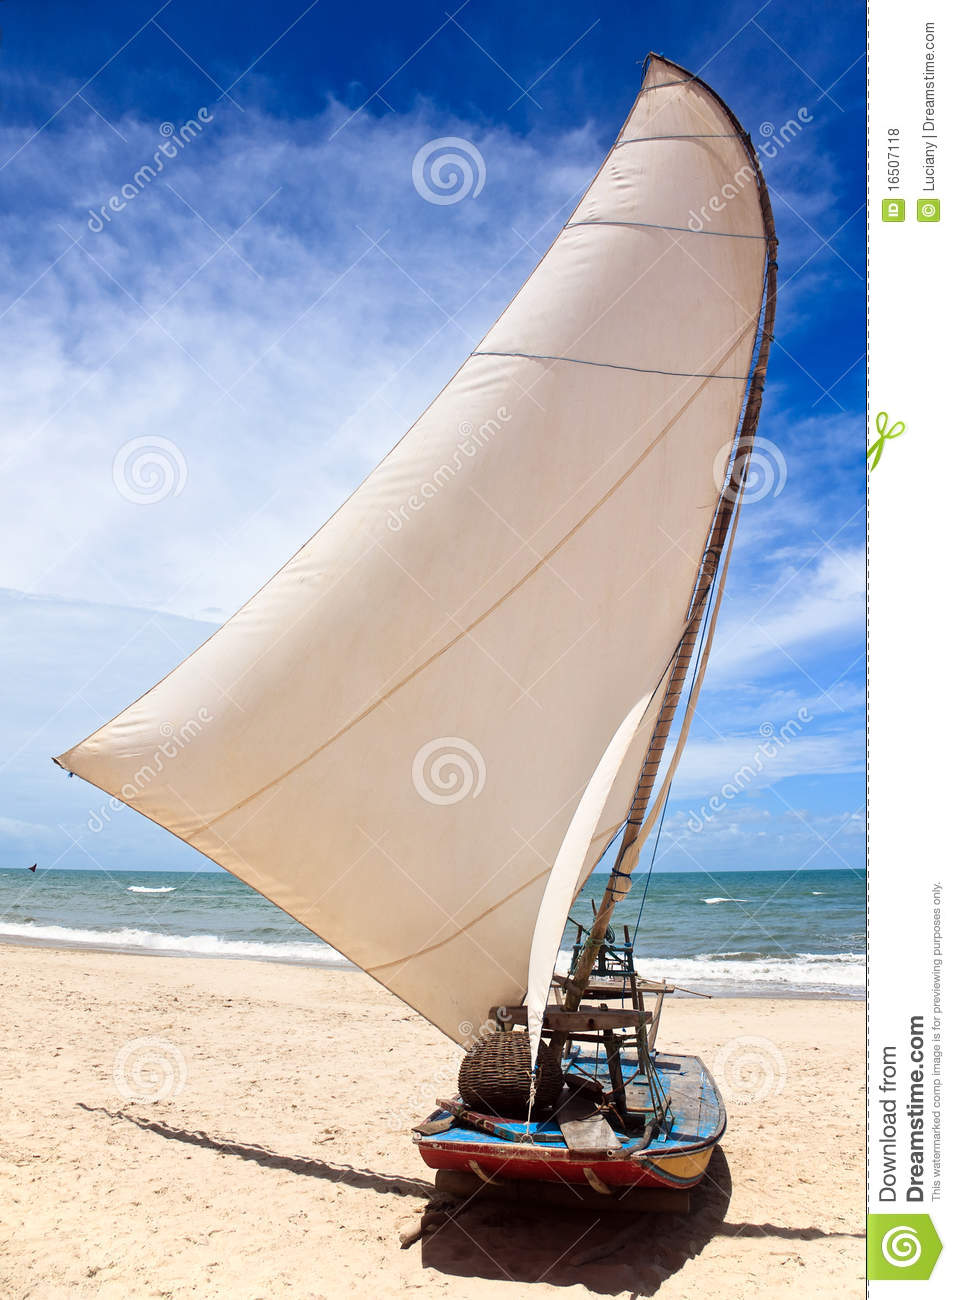 Sail Boat On A Brazilian Beach Royalty Free Stock Photos - Image ...